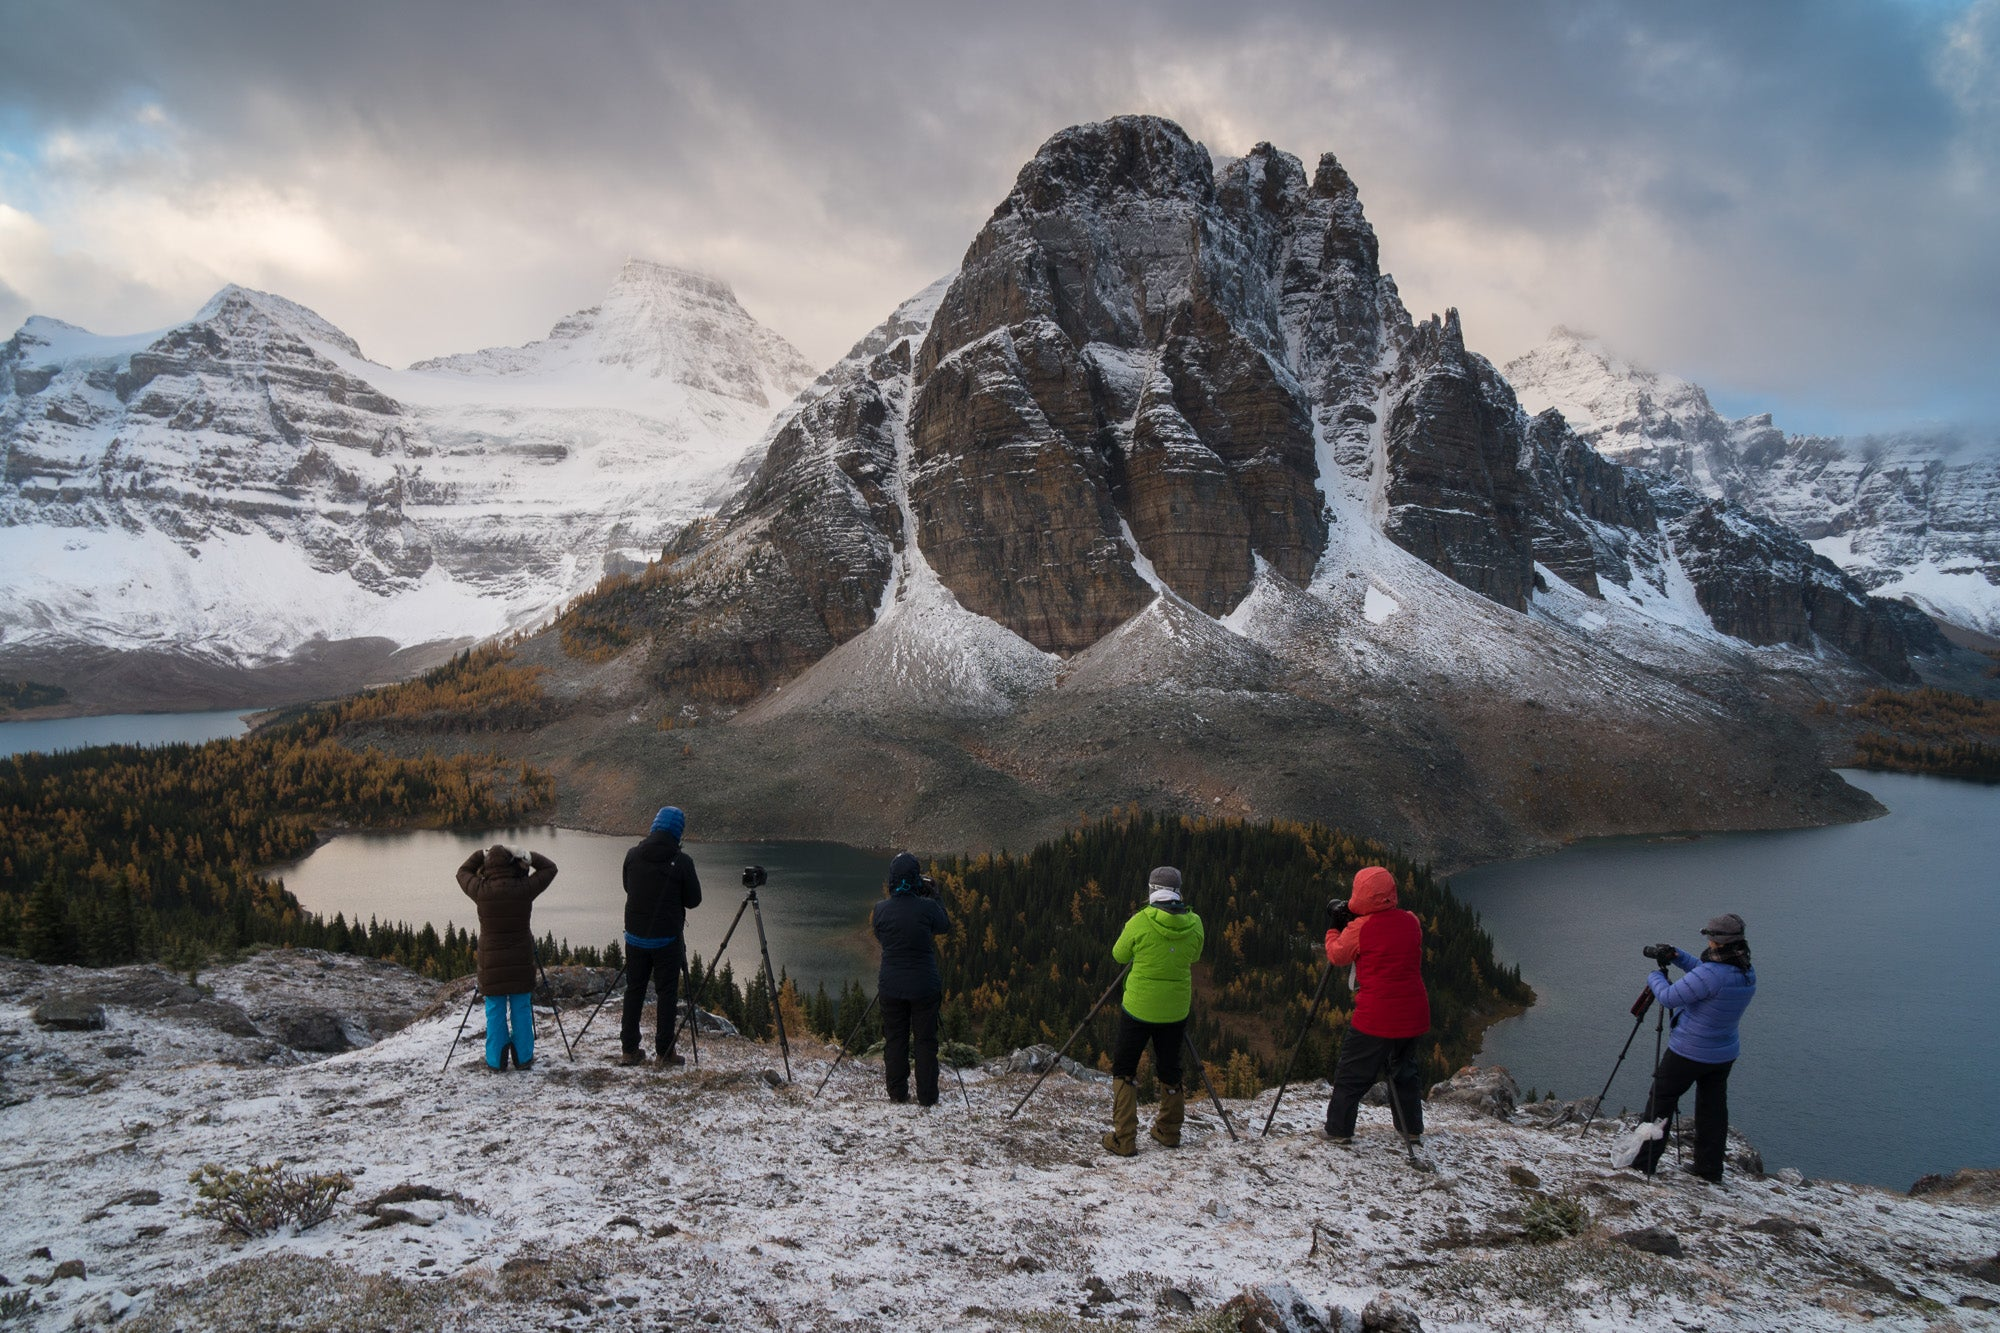 photographers photographing a mountain in the winter